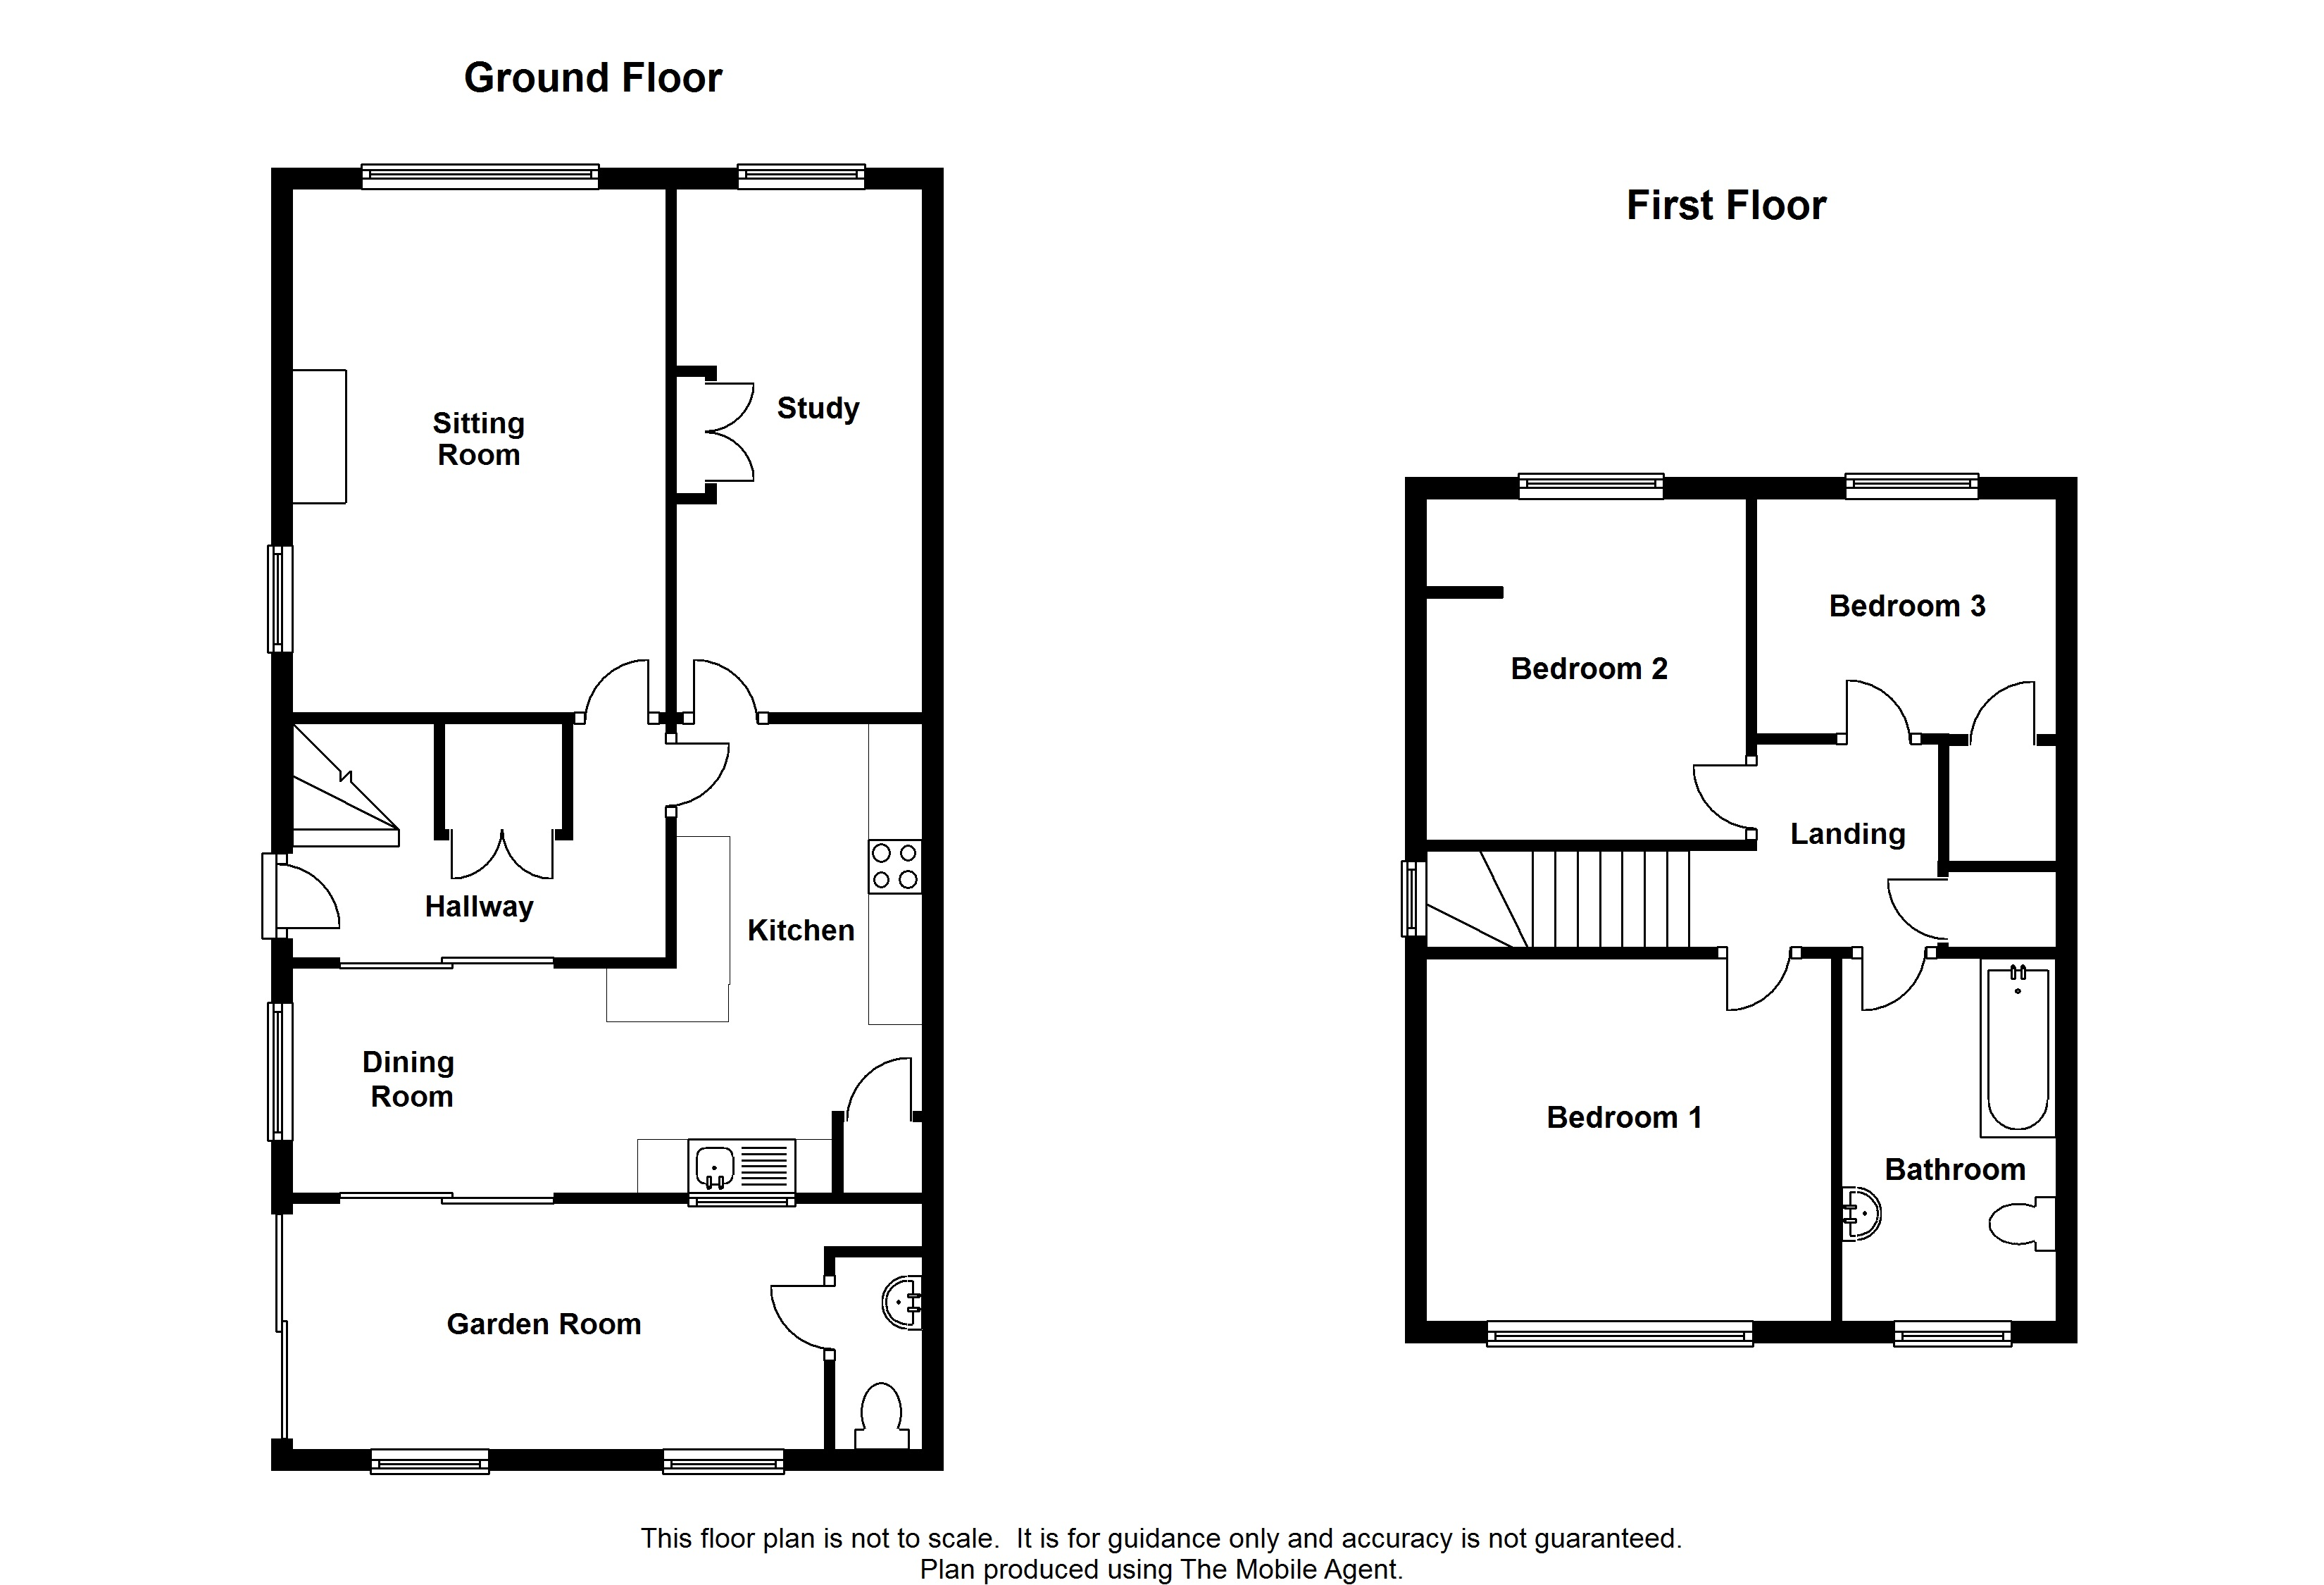 Floorplans For Haffenden Meadow, Charing